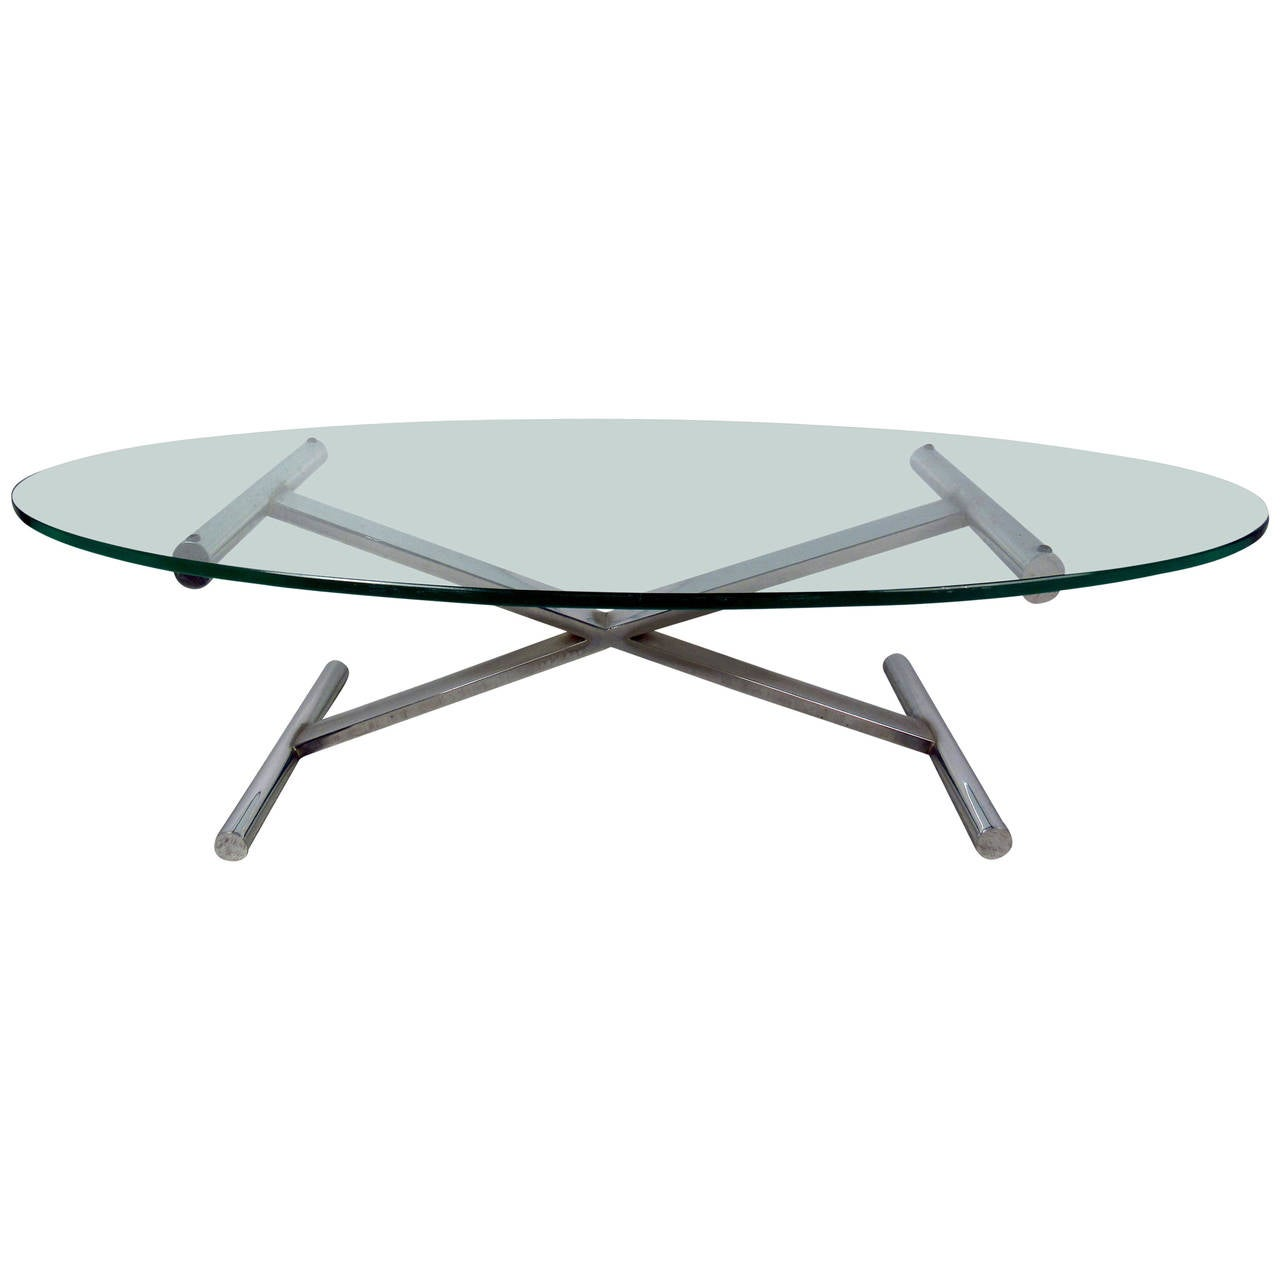 Oval Shaped Glass Top Coffee Table With Chrome Base For Sale At Stdibs - Chrome base glass top coffee table